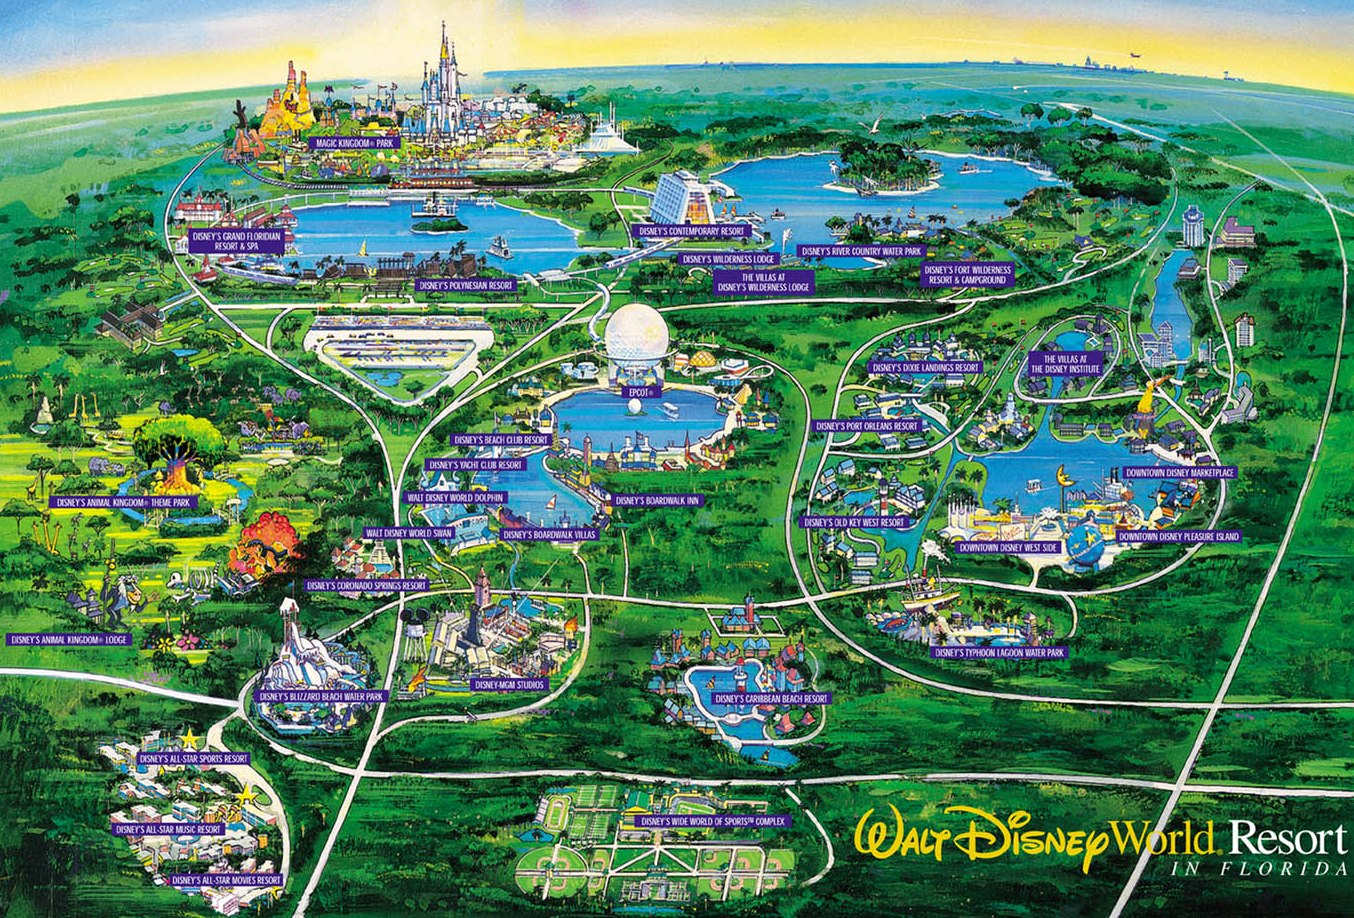 disney world orlando map with Dicas De Orlando on The Nighttime Lights At Hogwarts Castle To Premiere June 23 At Universal Studios Hollywood further 14311656458 together with Dicas De Orlando as well Faves Kmika further 23877861004.